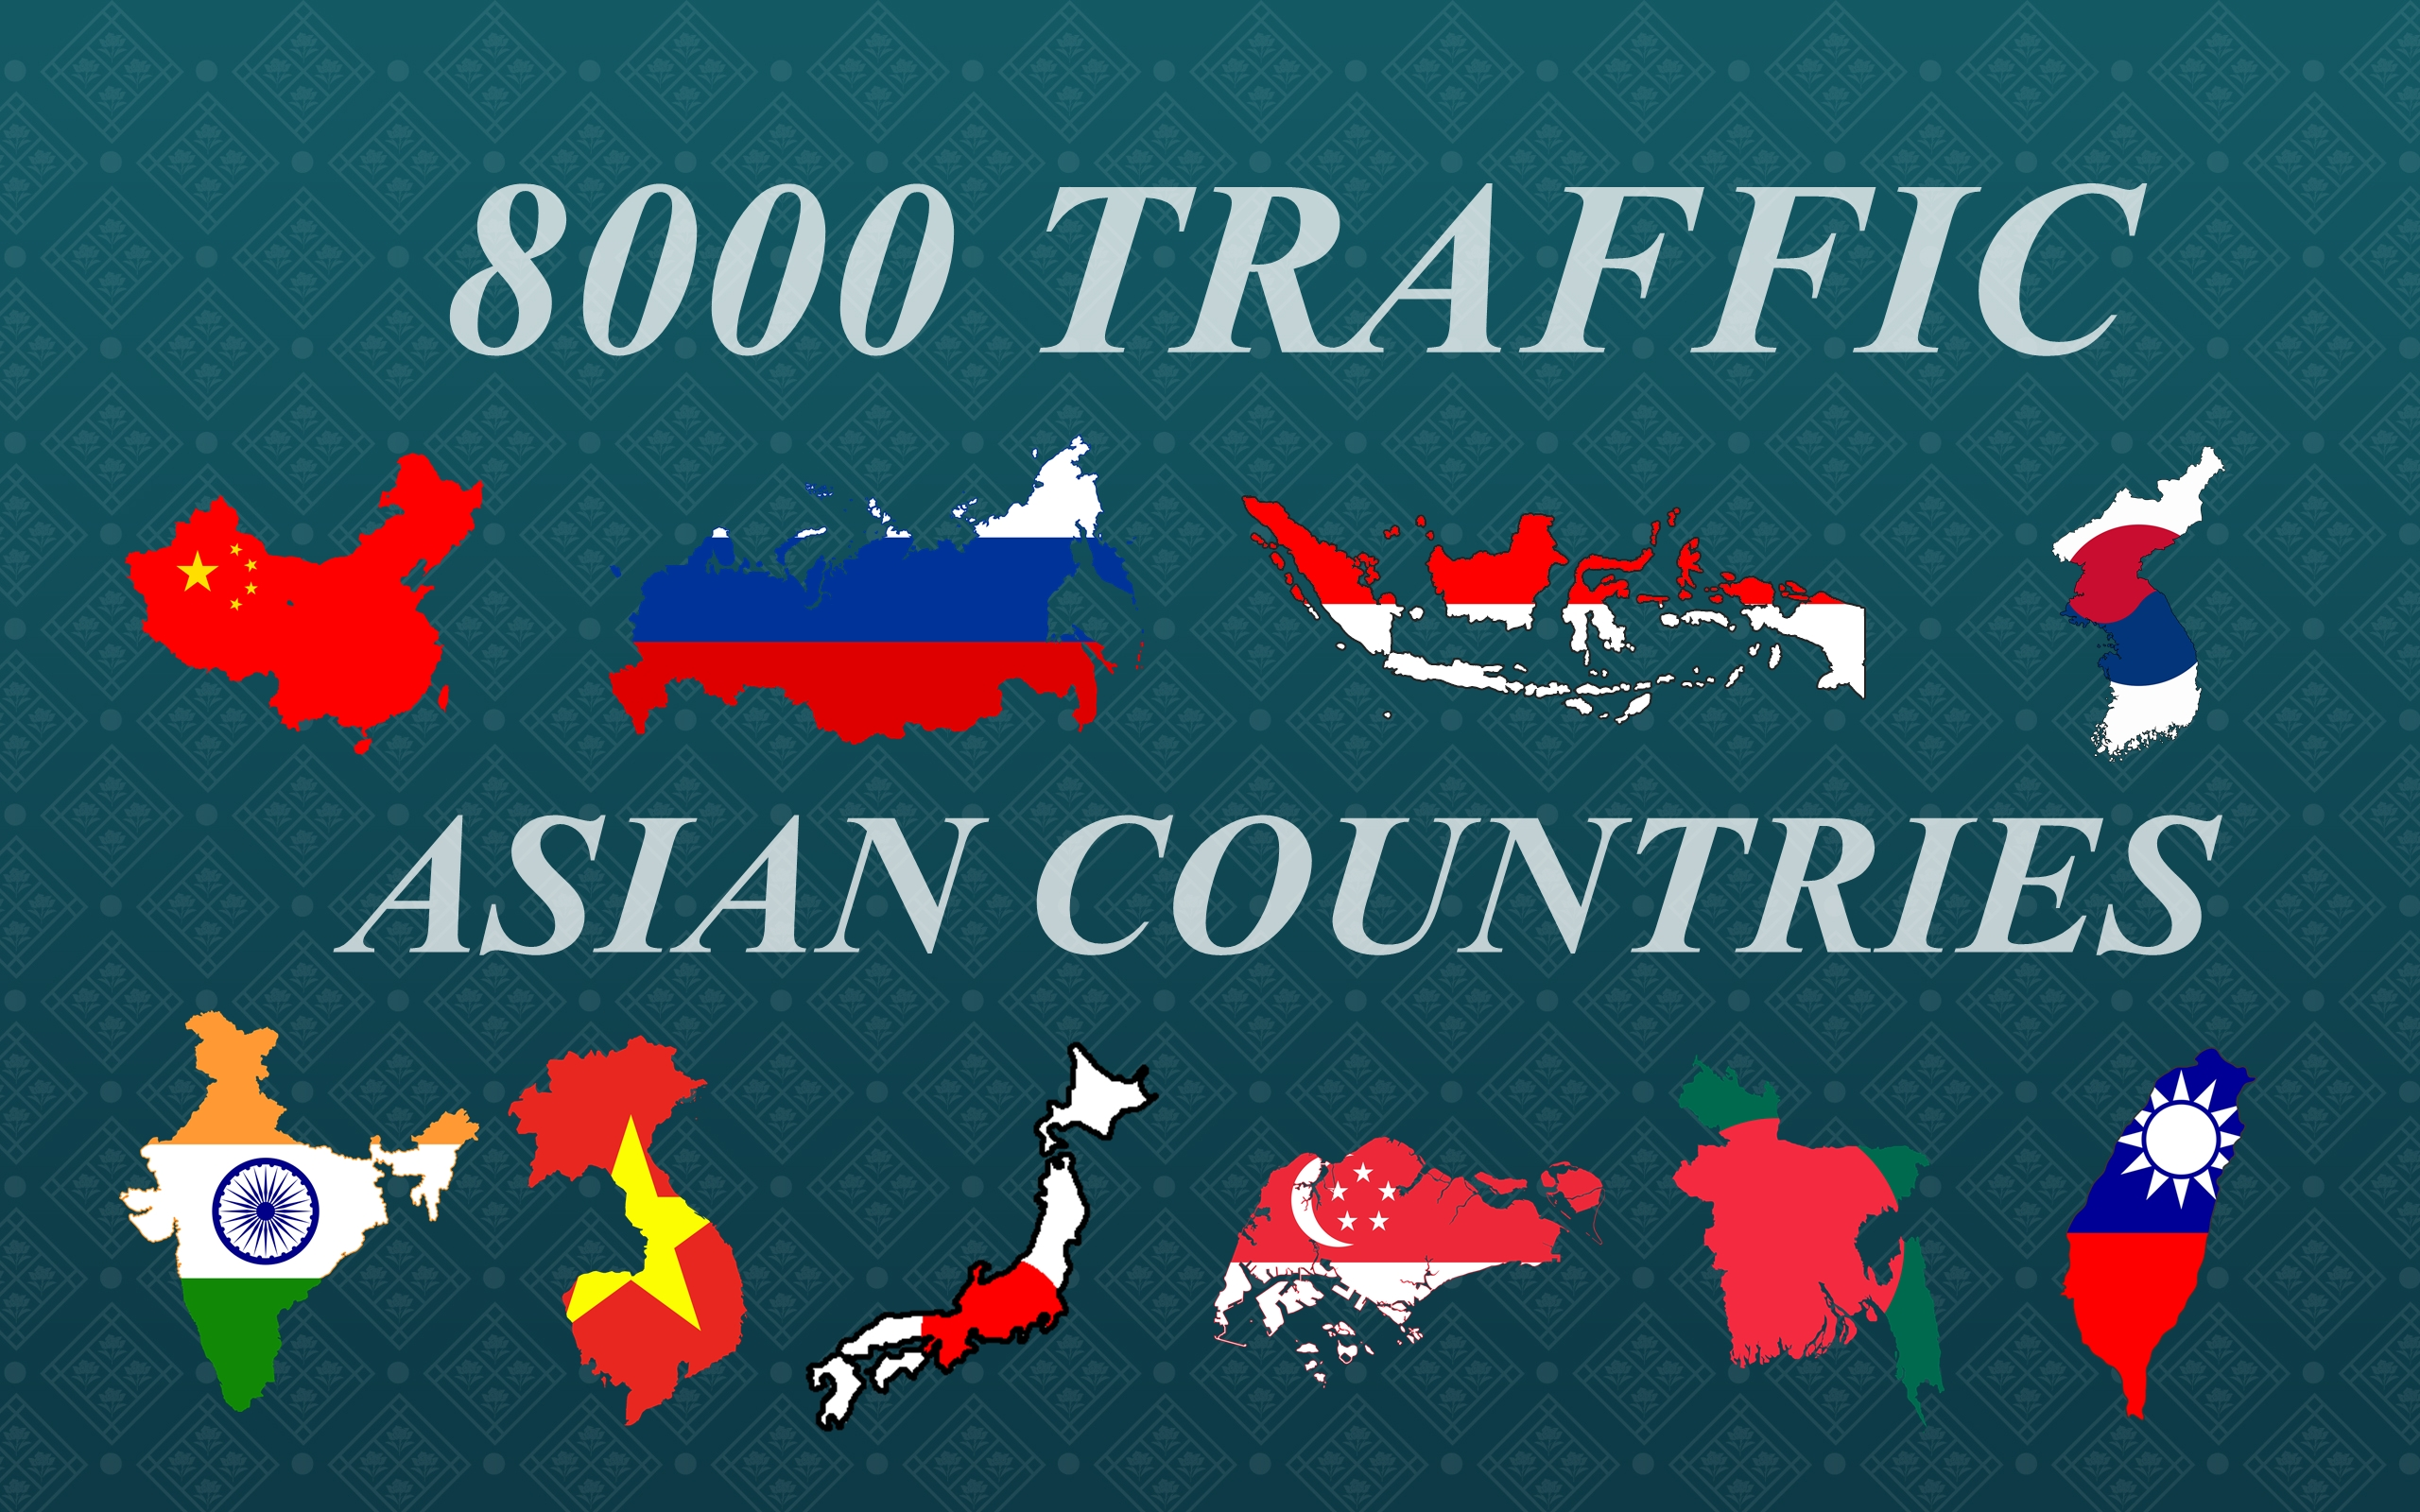 8000 traffic visitors mostly from Asian countries